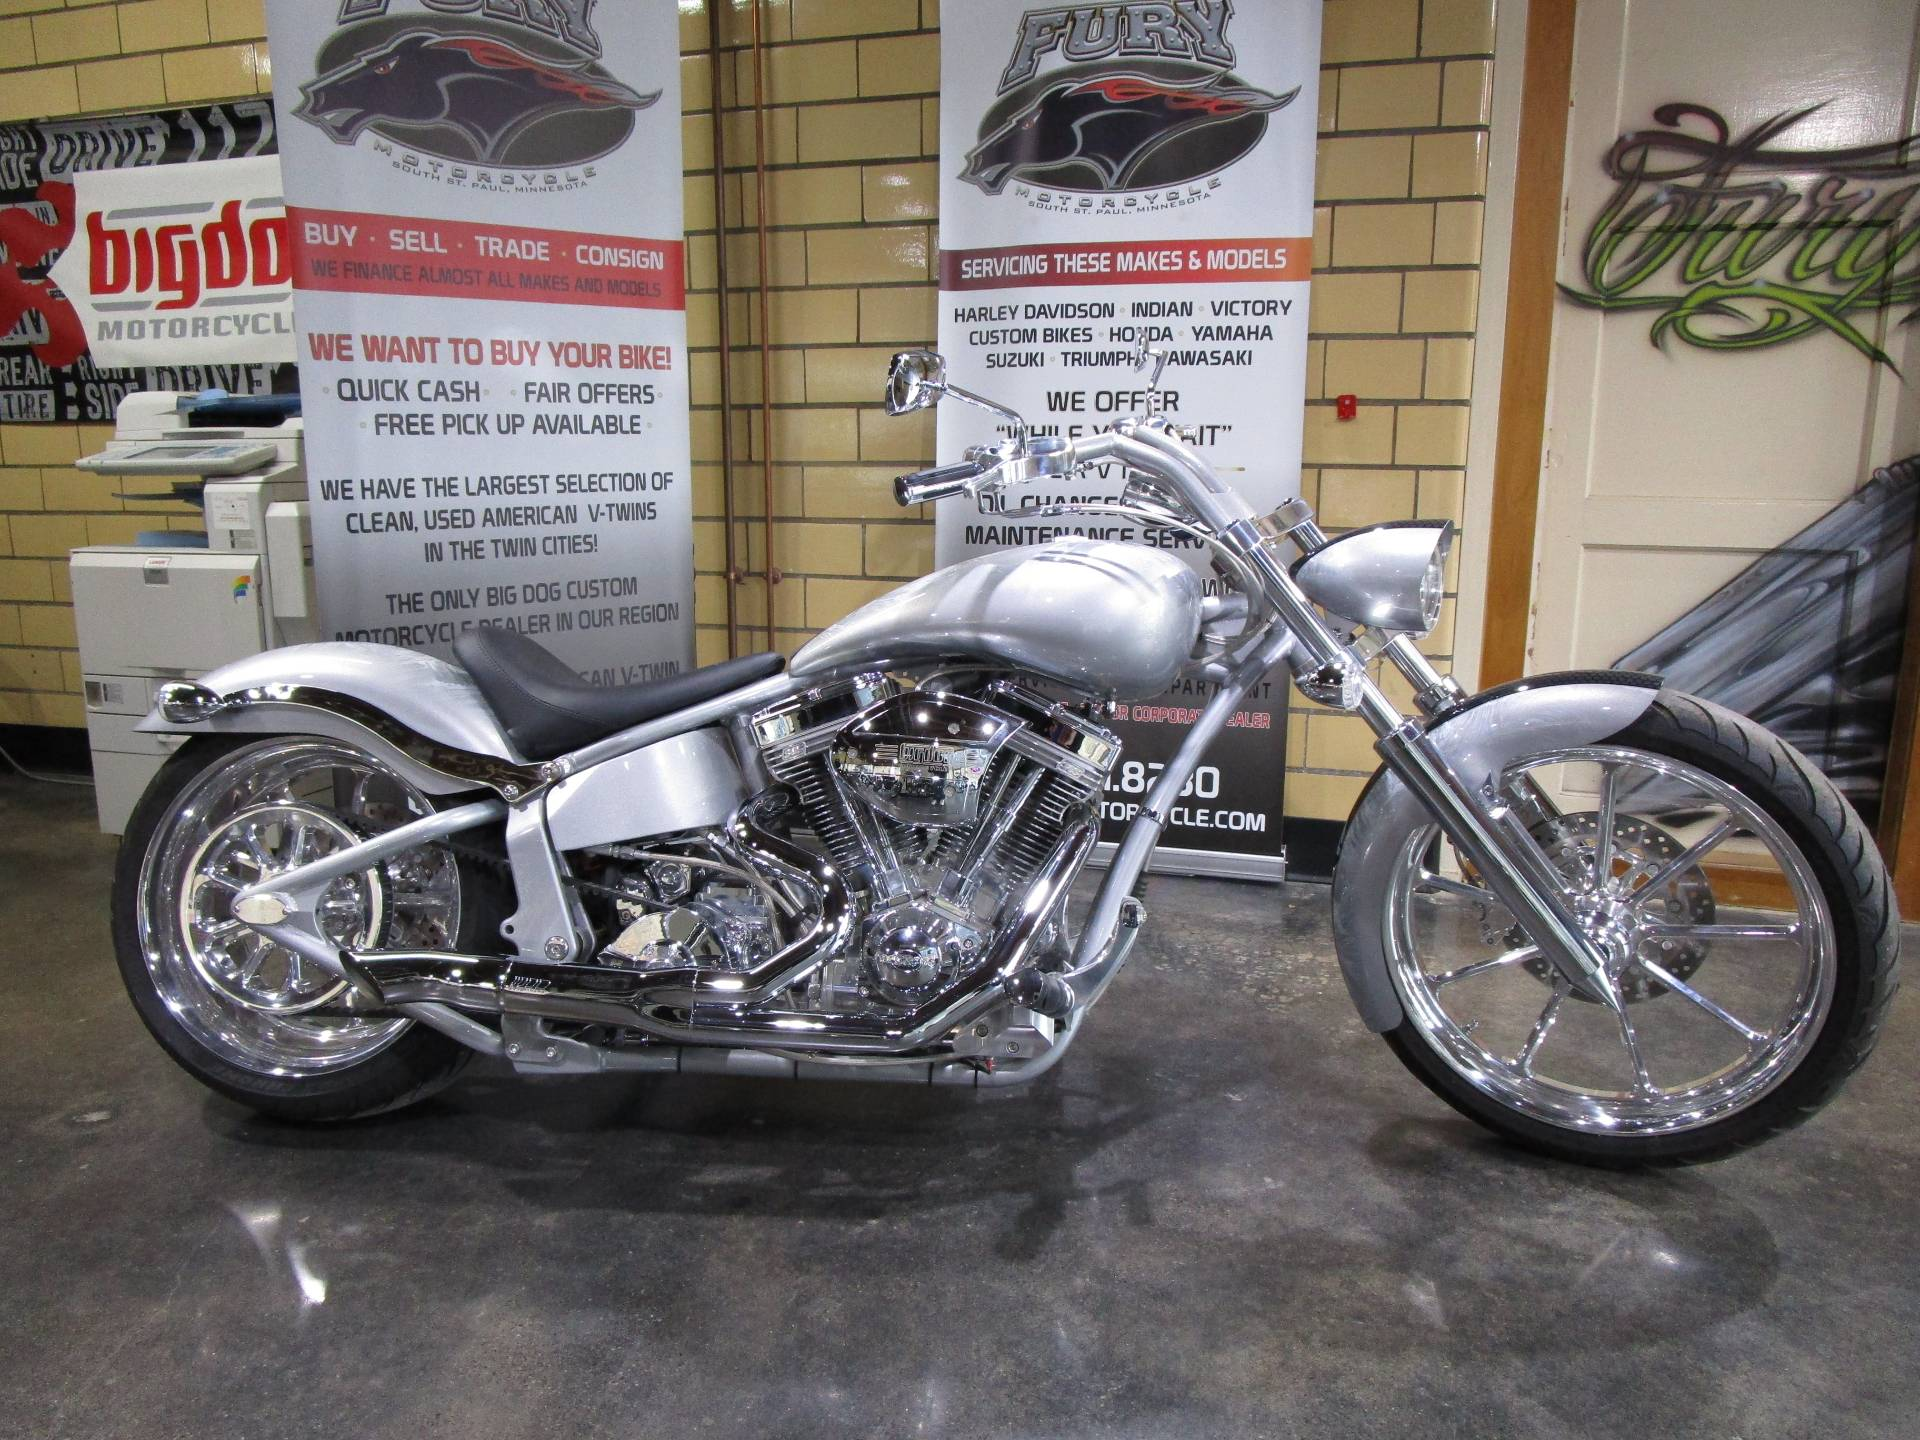 2020 Big Dog Motorcycles Coyote in South Saint Paul, Minnesota - Photo 1